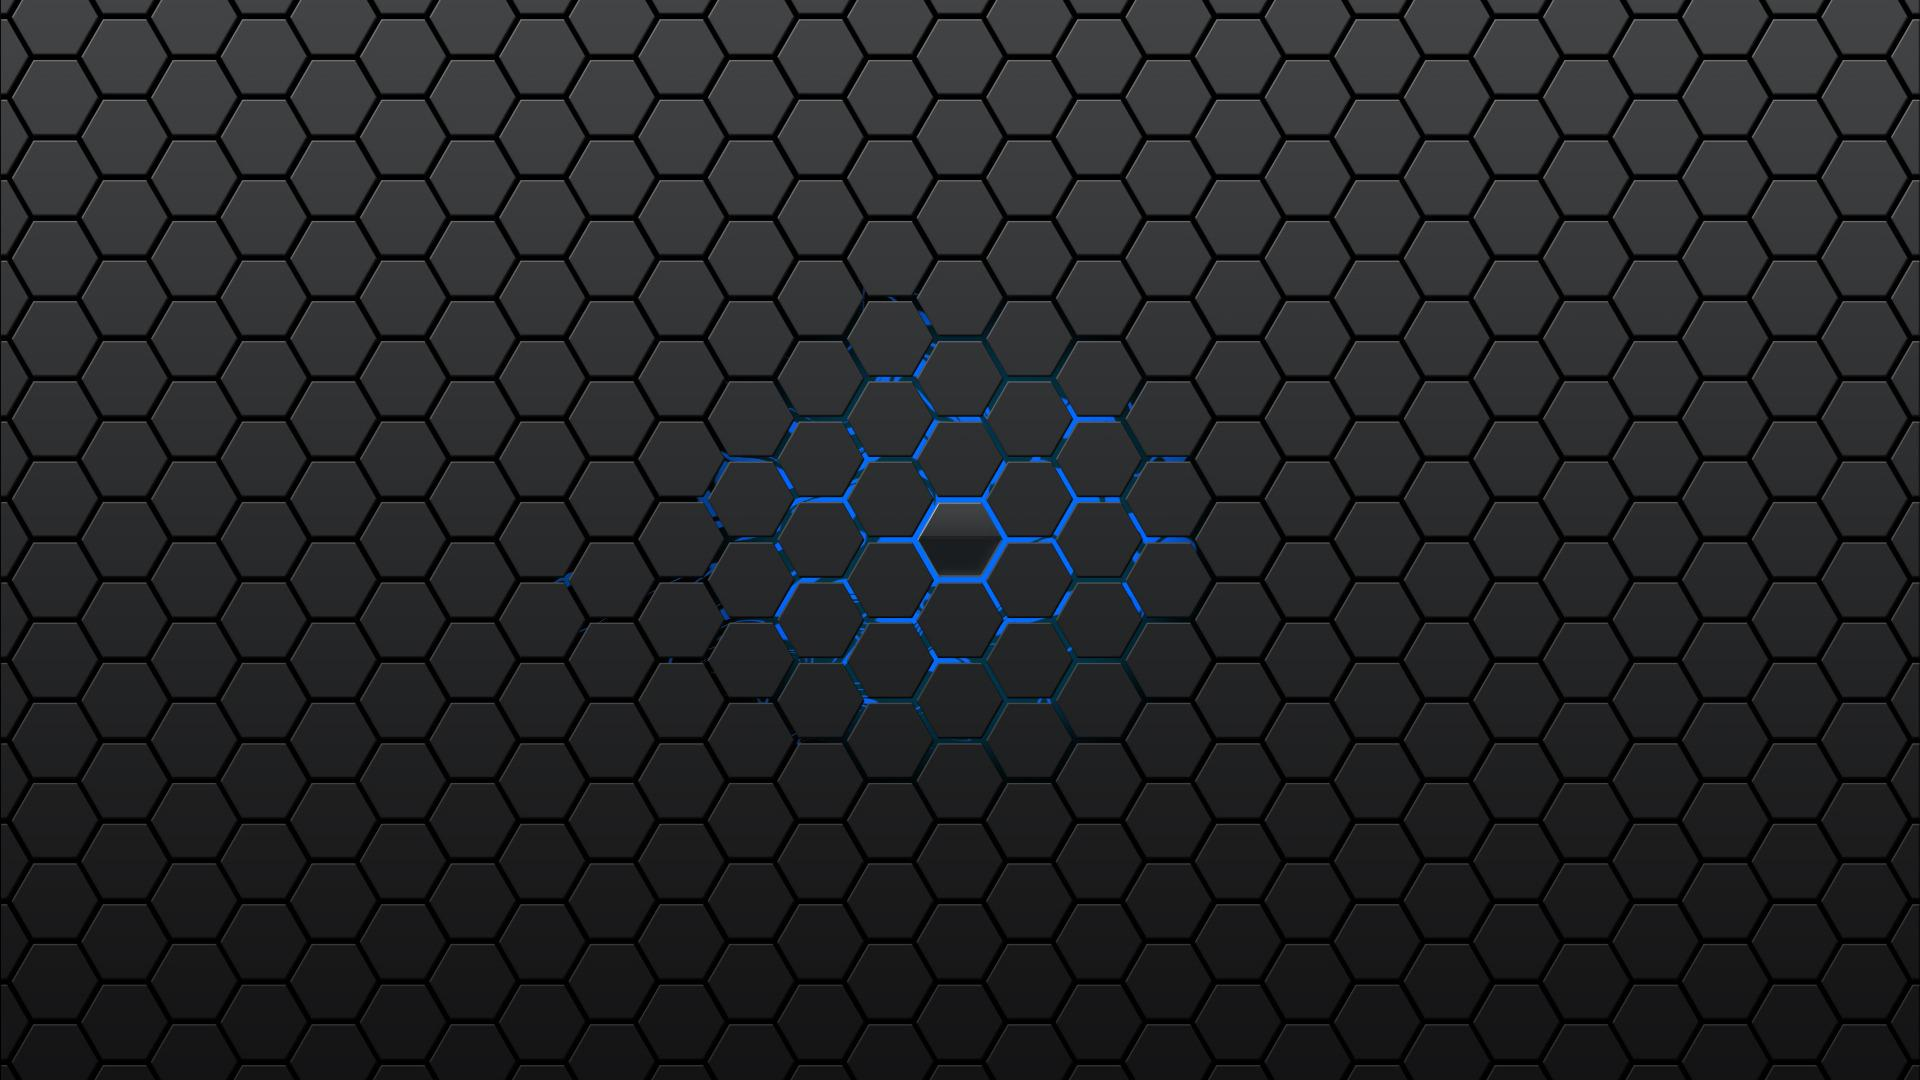 Cute Baby Face Wallpaper Hd Black Hexagons Wallpaper Download Free 147672